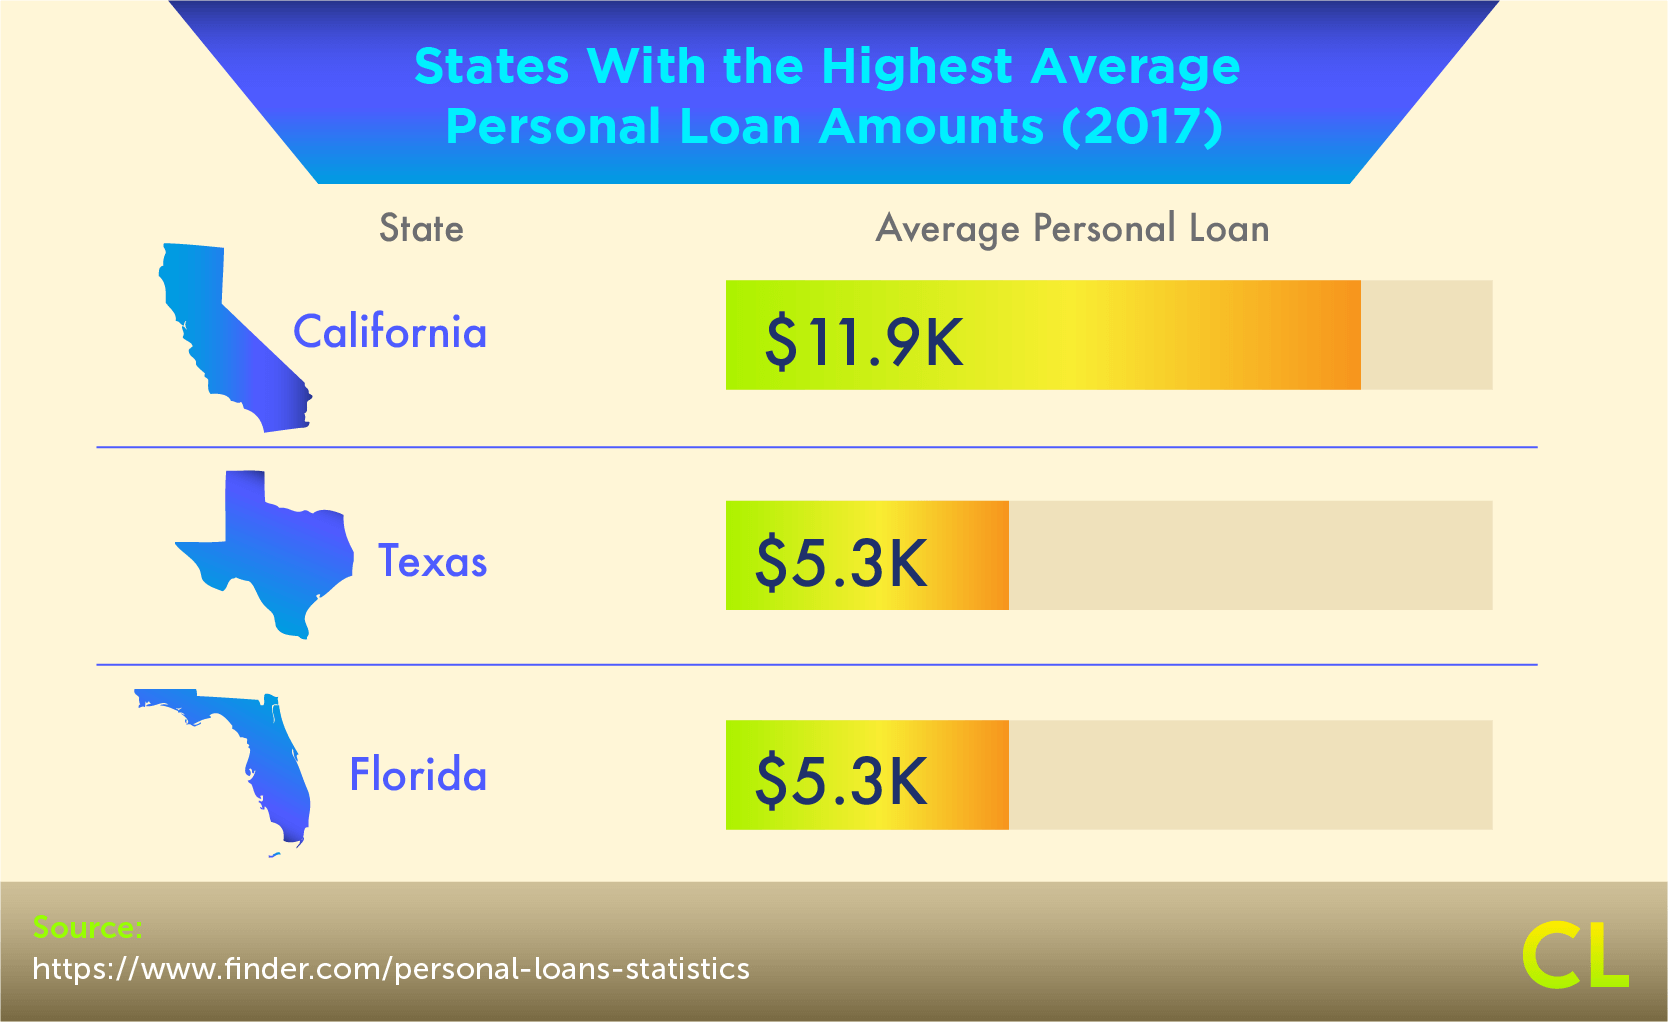 States With the Highest Average Personal Loan Amounts